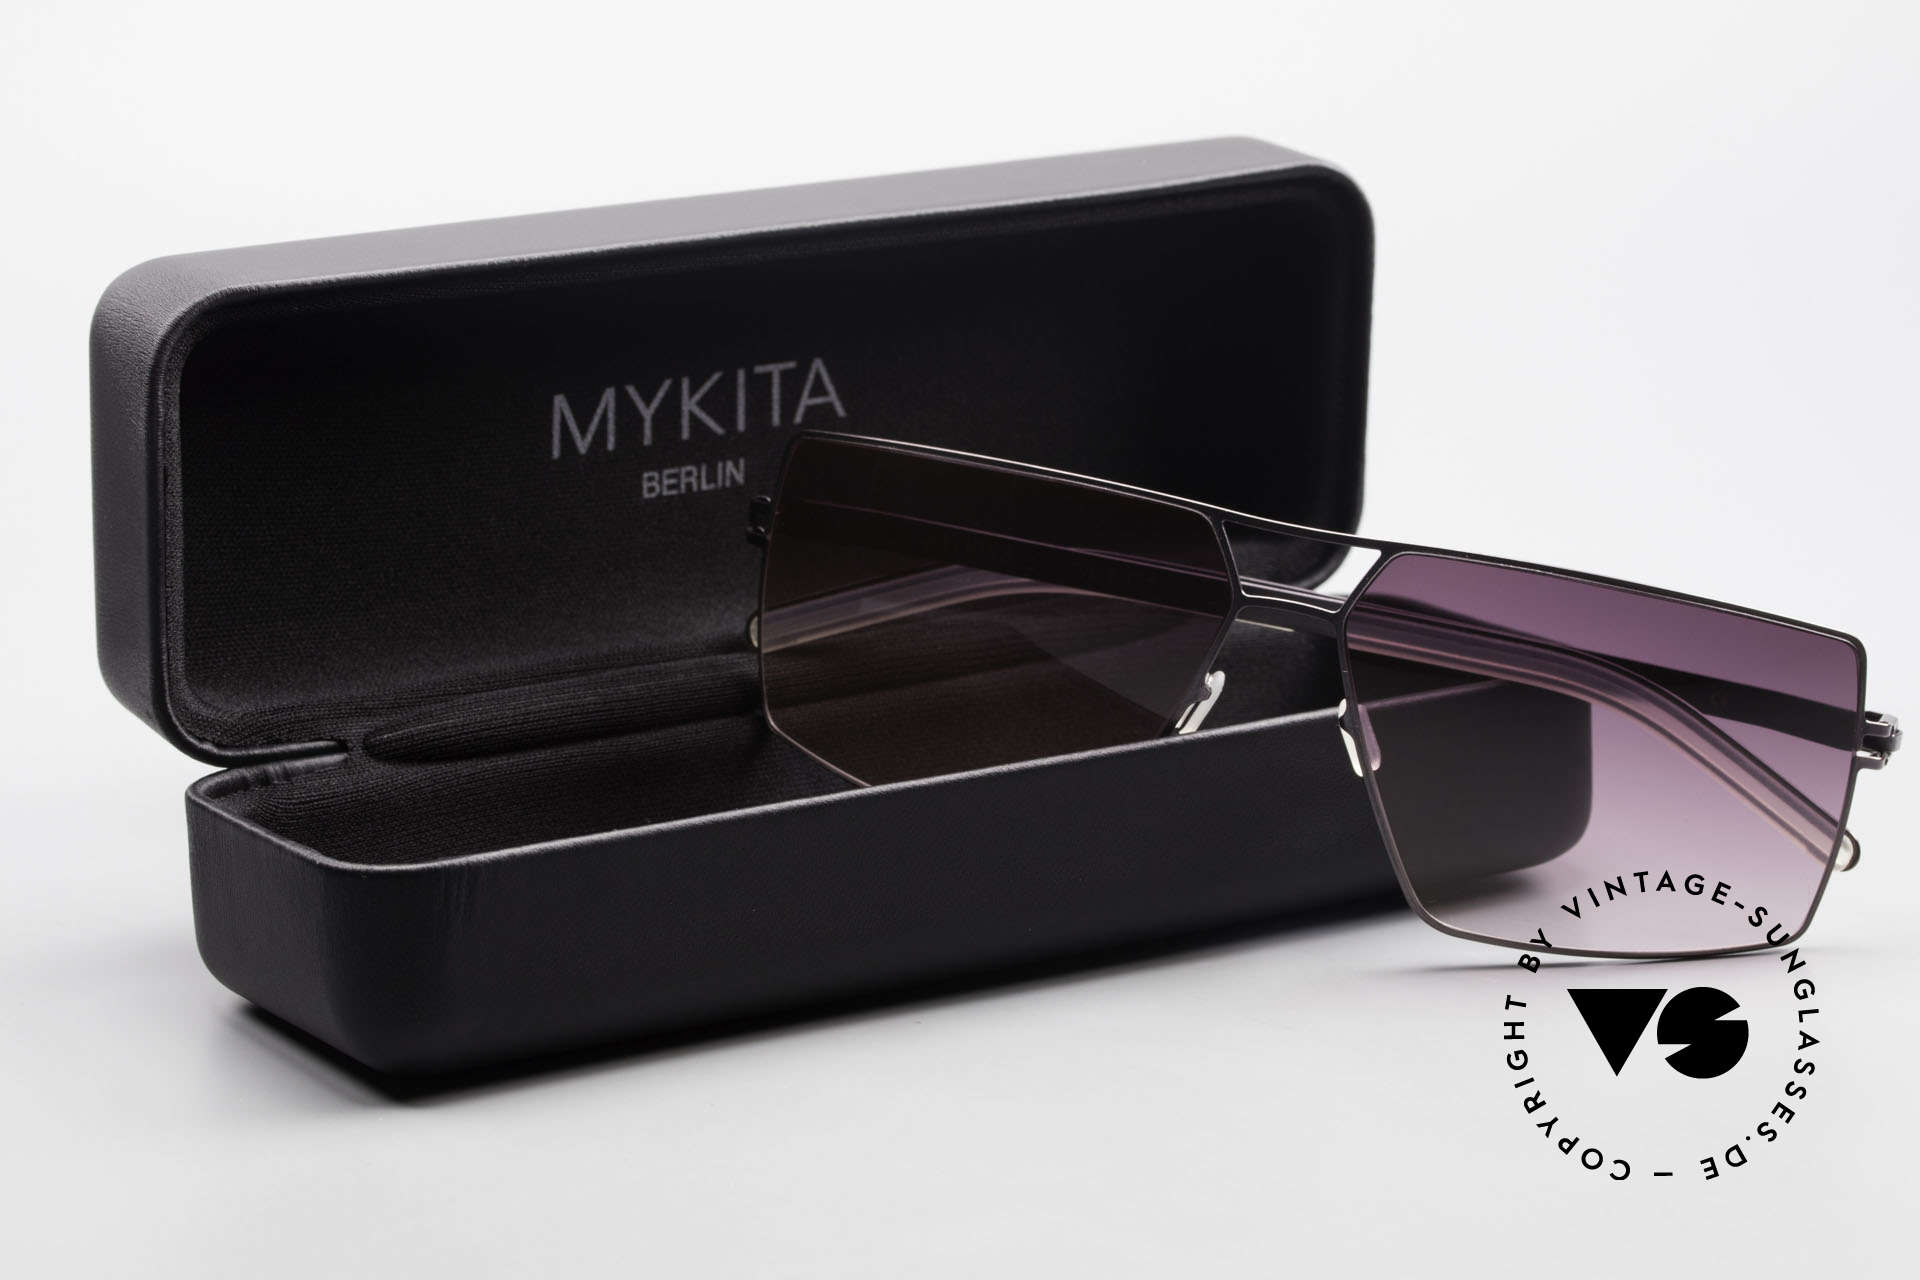 Mykita Viktor Designer Sunglasses Square, Size: medium, Made for Men